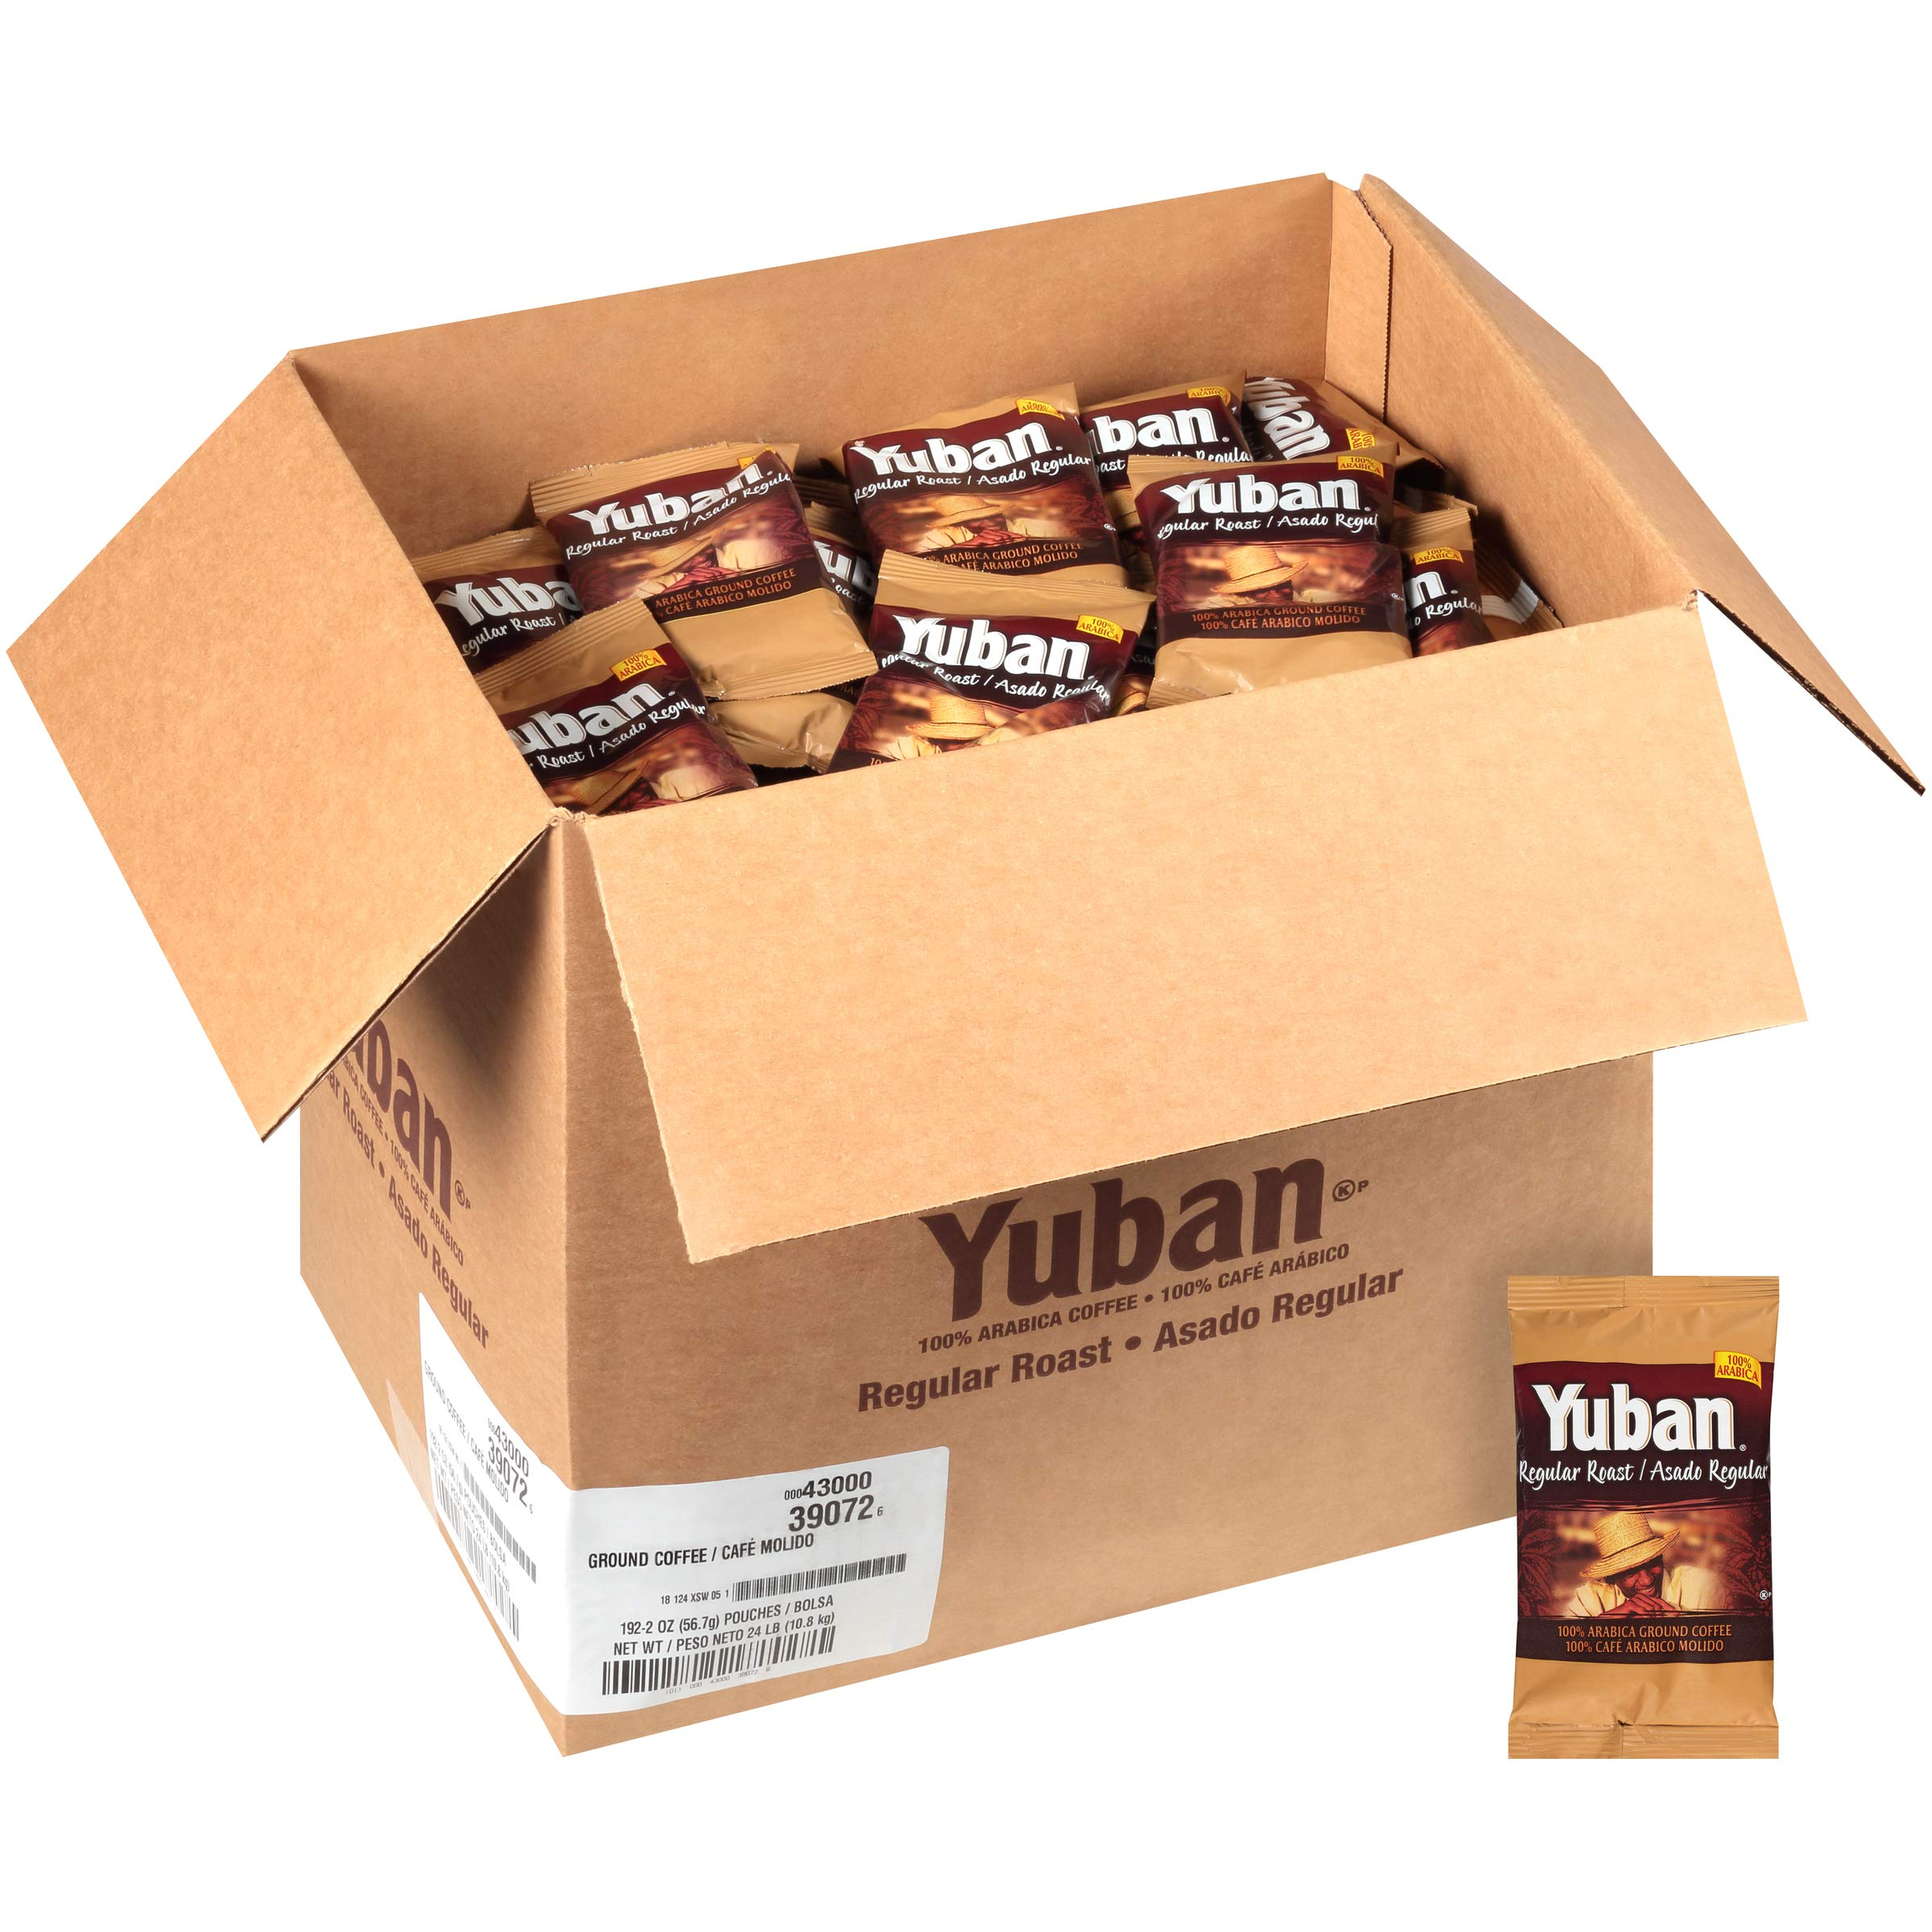 Yuban Regular Ground Coffee (2oz Bags, Pack of 192) by Yuban (Image #3)